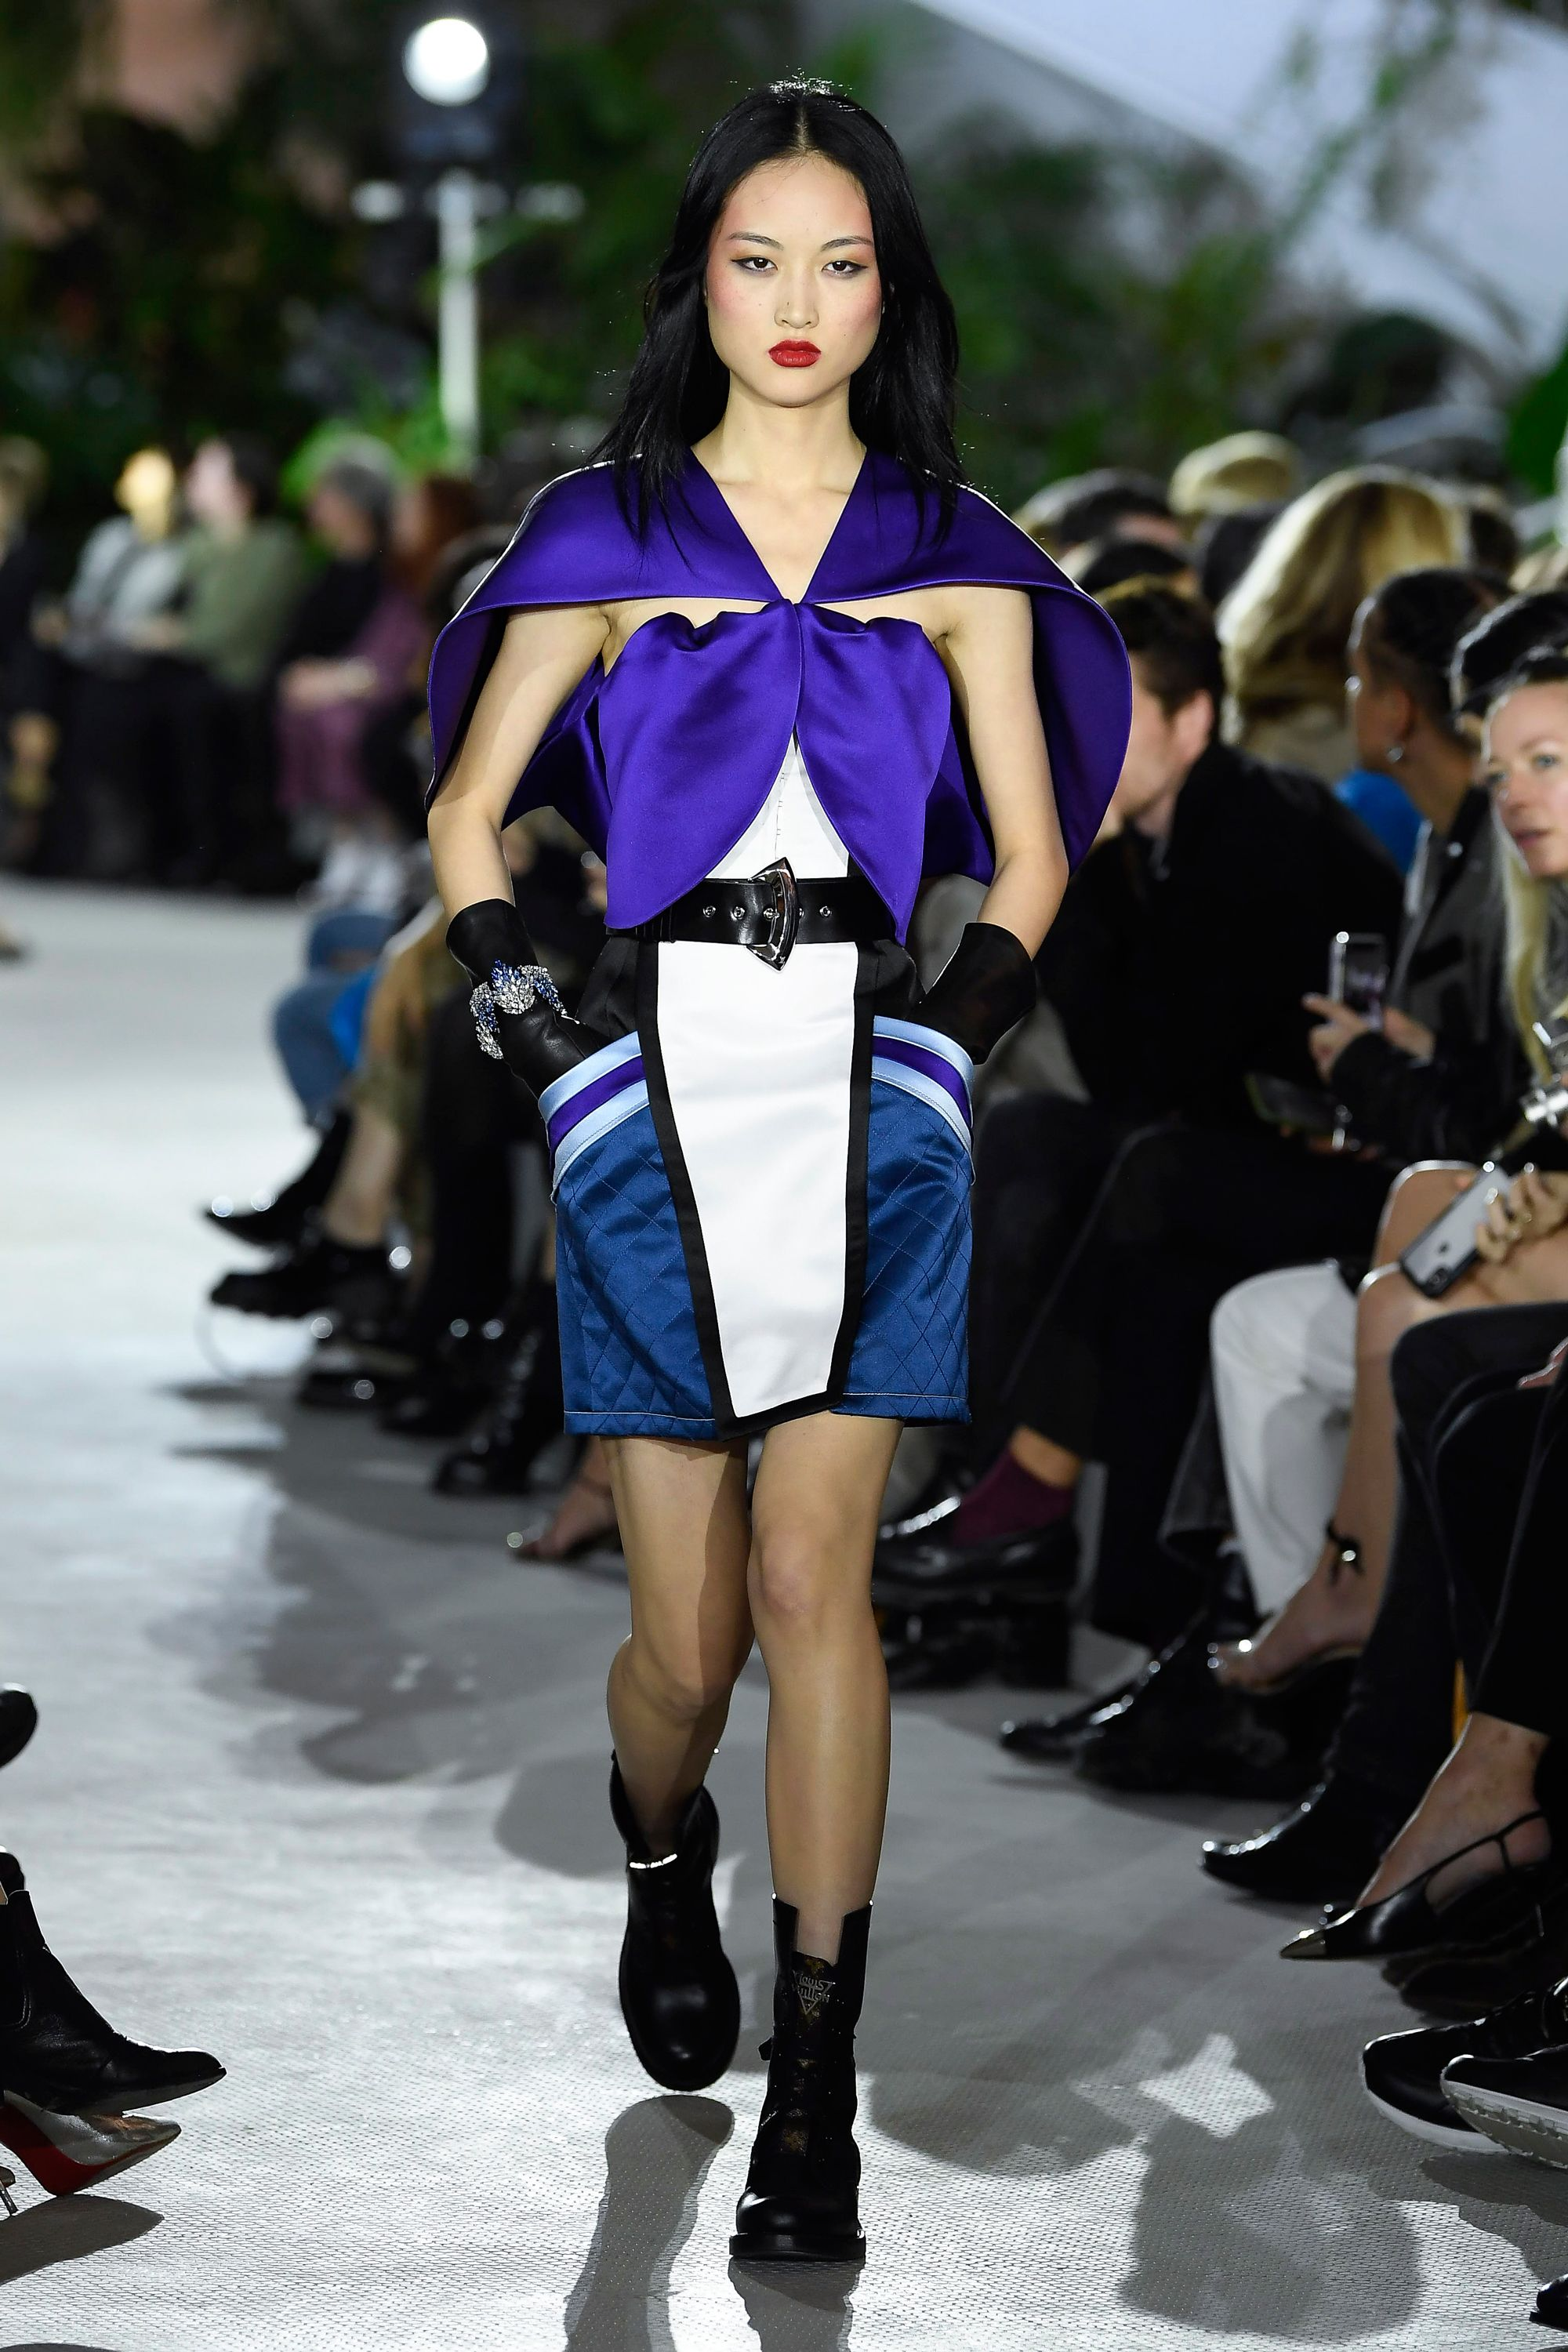 Cape-like tops and severe shoulder pads also brought to mind classic futurism, with a nod to Star Trek 's signature costuming.